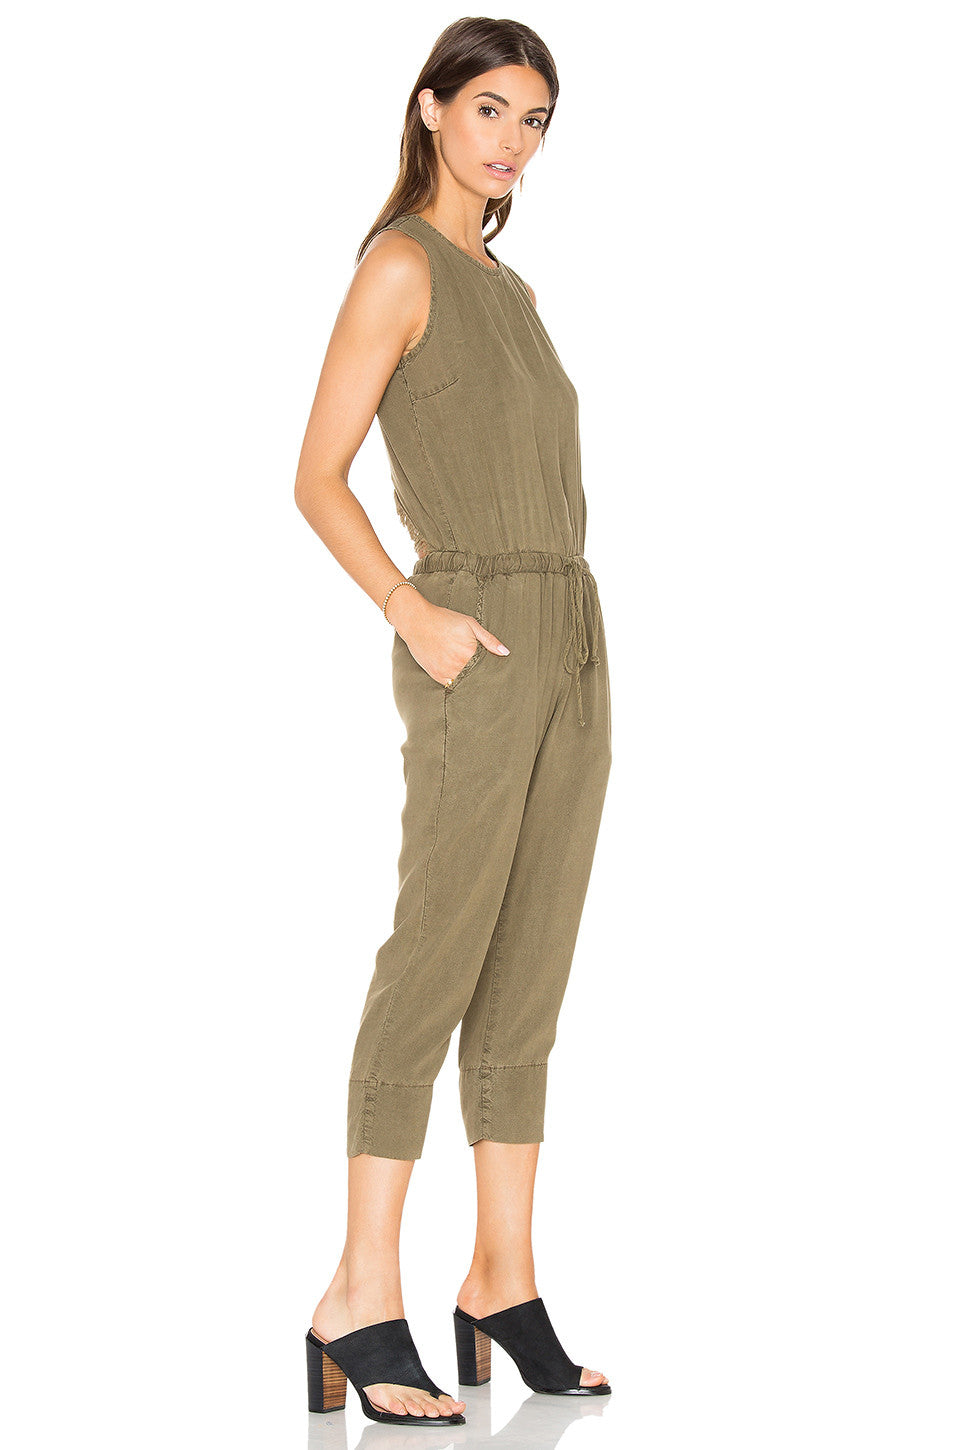 Pine-me-back Jumpsuit, Bella Dahl - Gingerly Witty